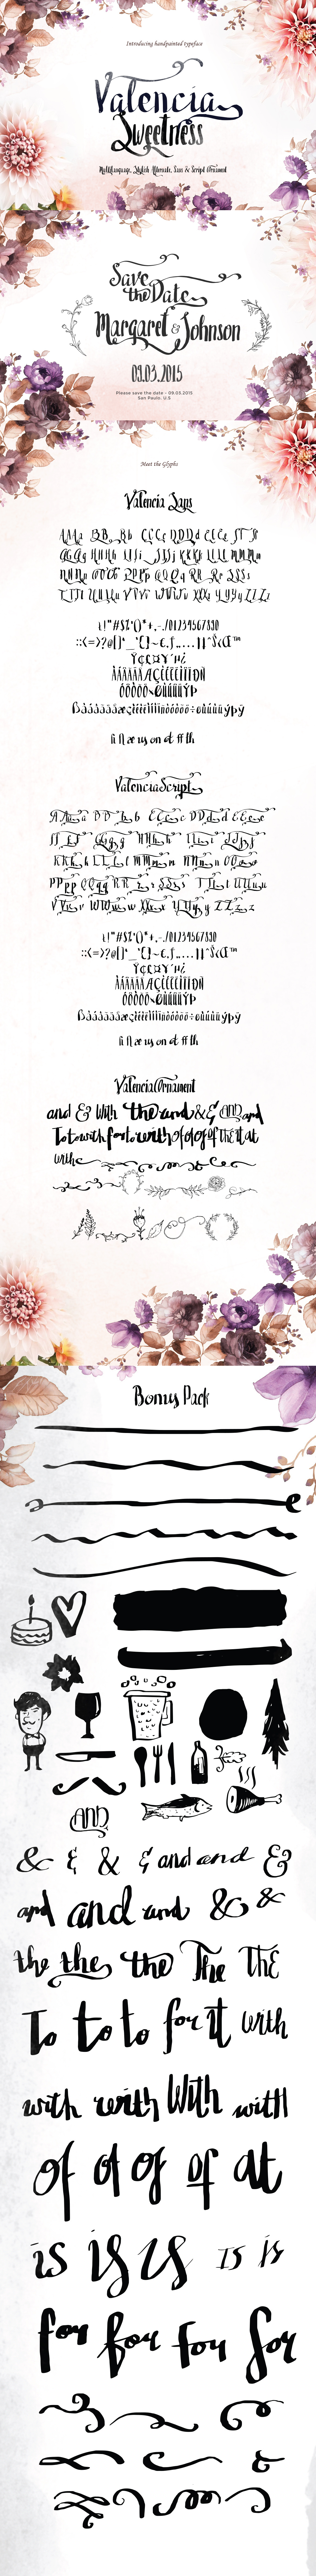 Valencia Free Modern Calligraphy Font